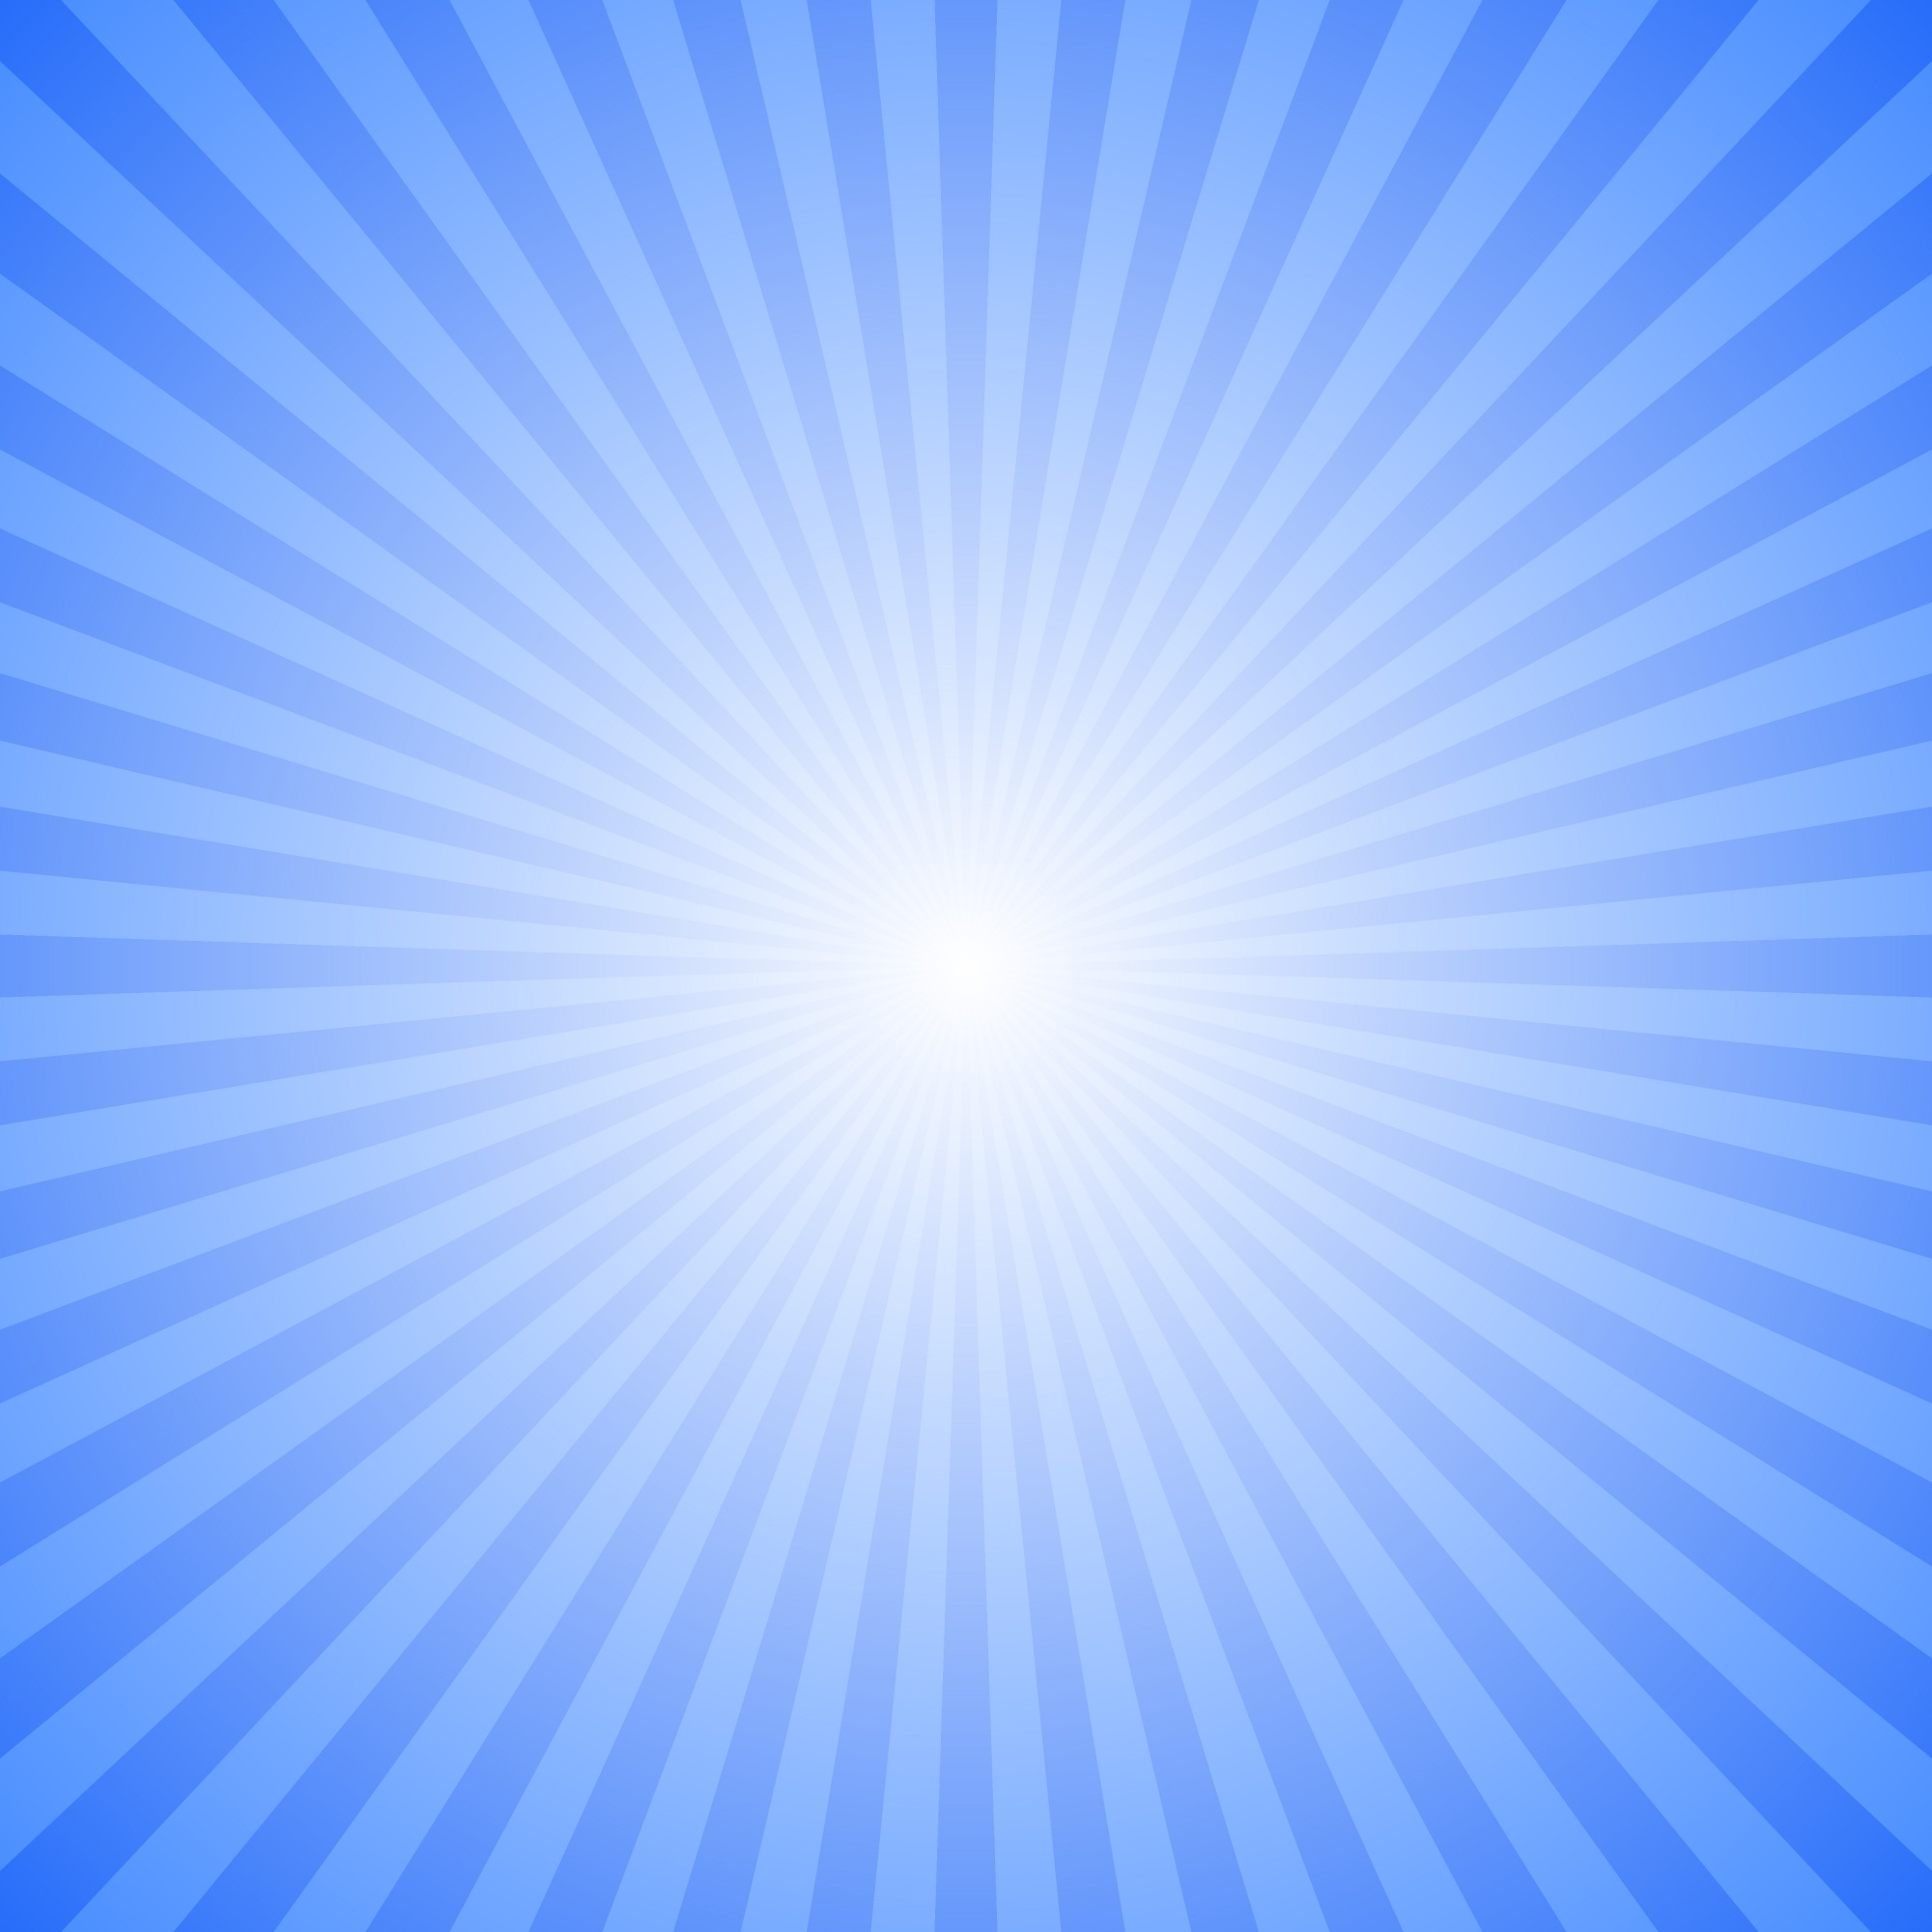 Blue abstract ray burst background - motion vector graphic design from striped rays